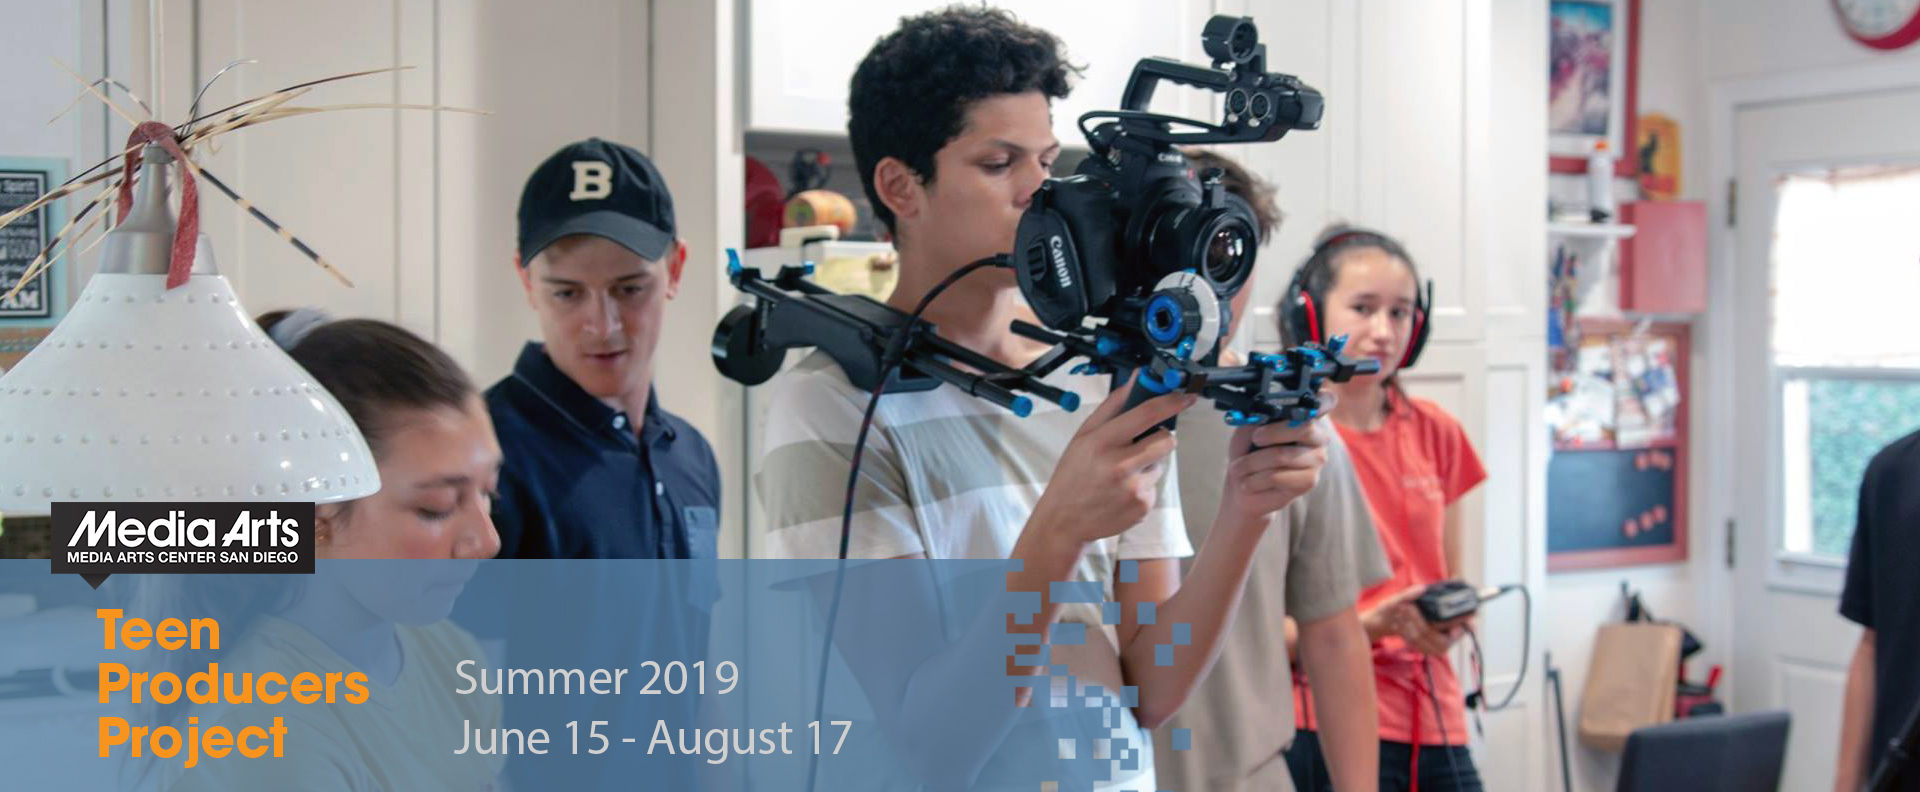 Summer 2019 Teen Producers Project